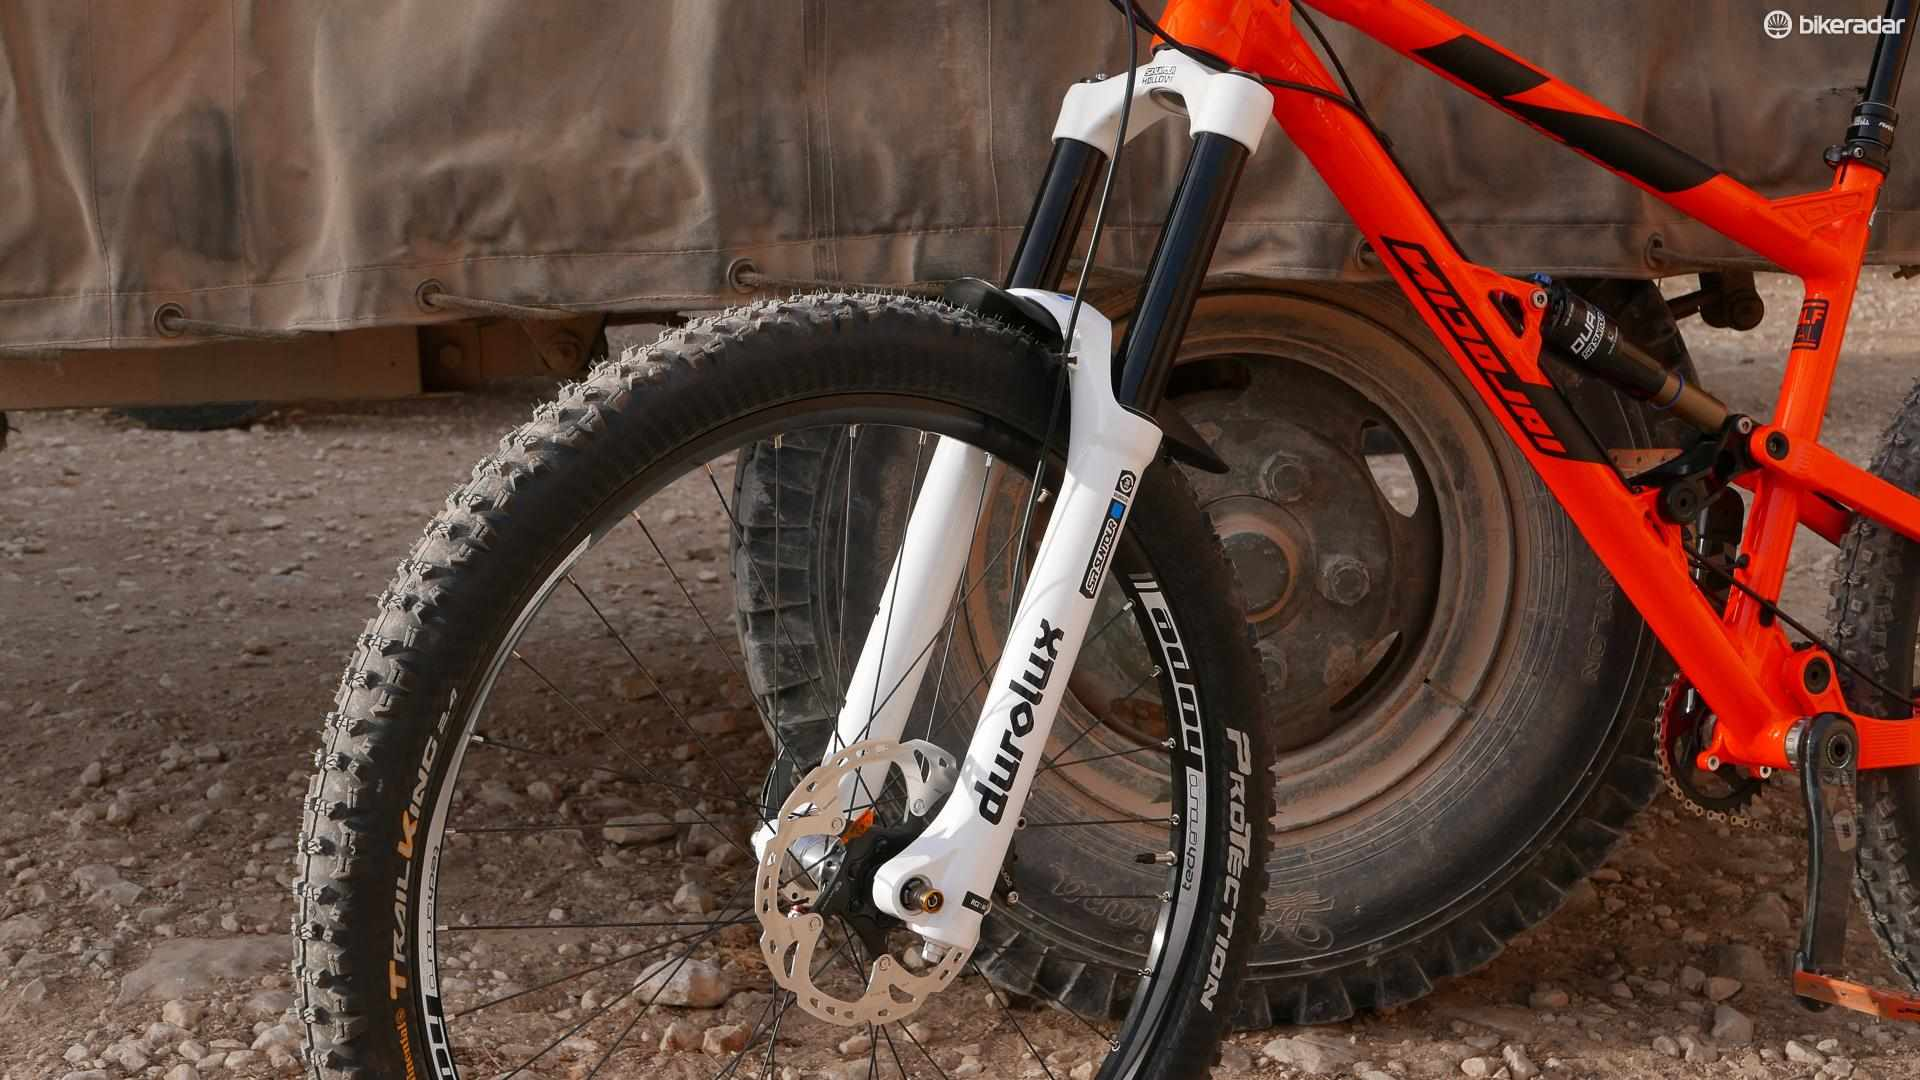 The 2016 SR Suntour Durolux gets a beefier 36mm chassis and all-new R2C2 damper